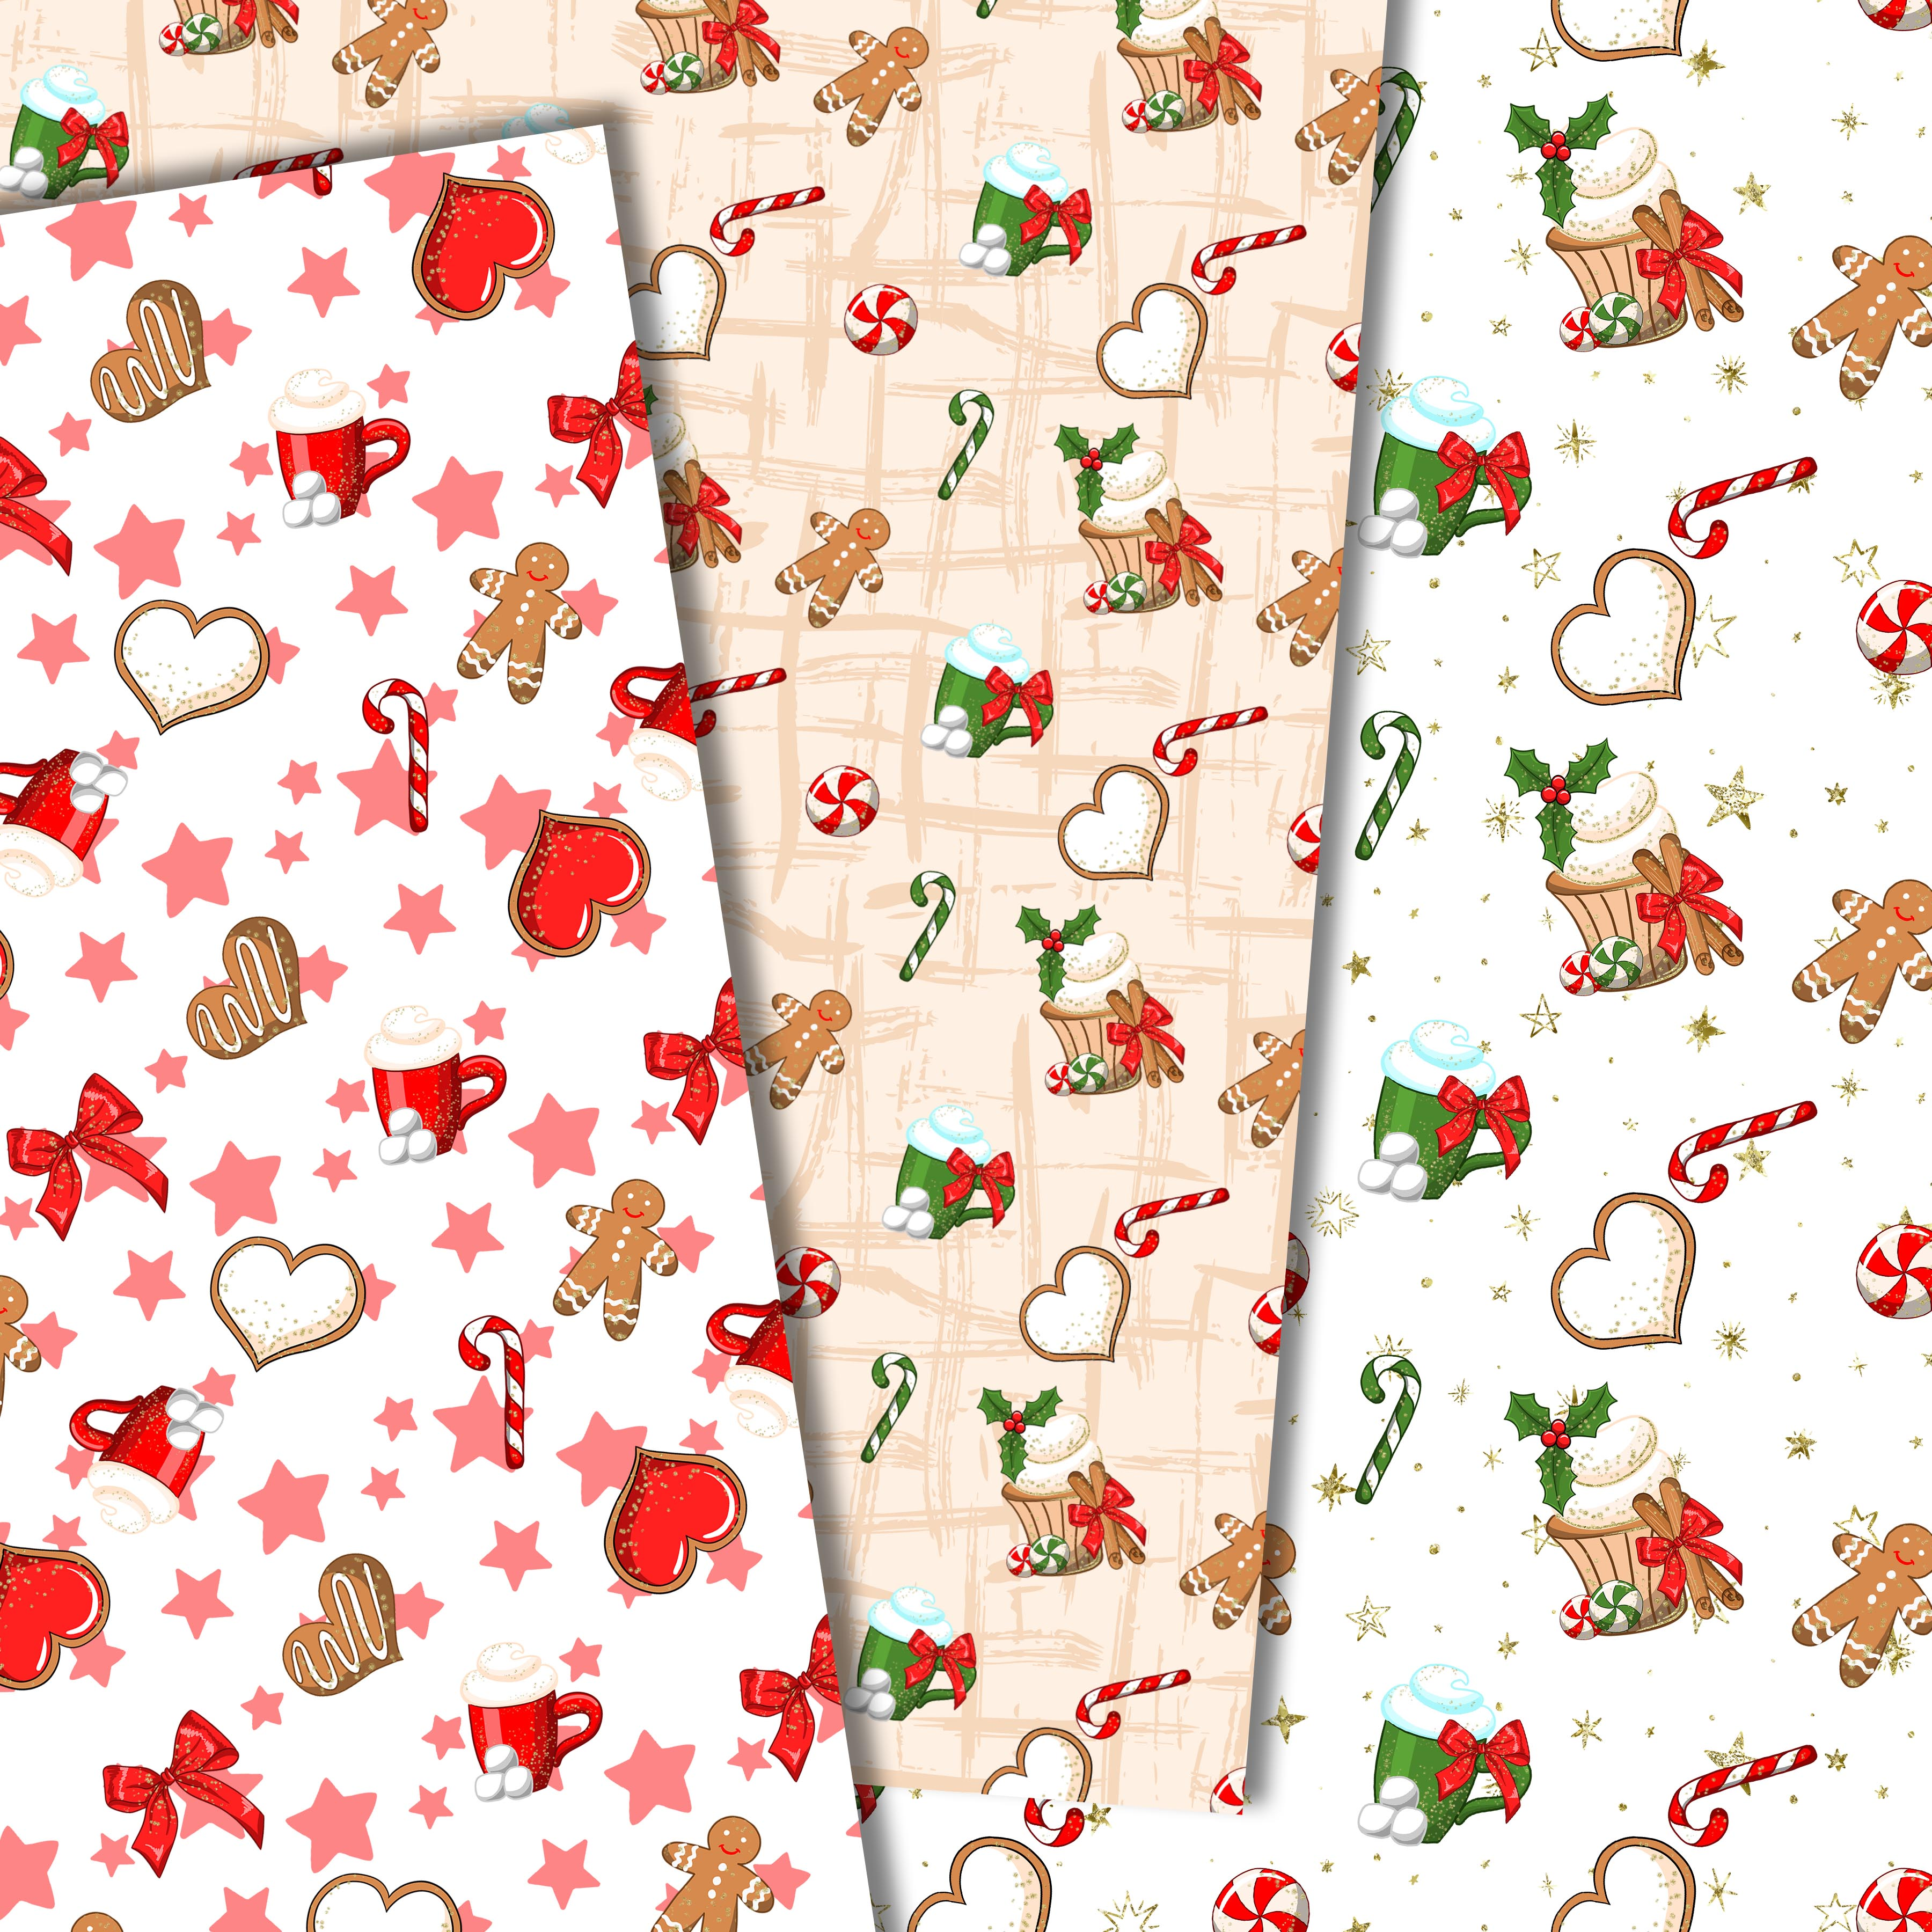 Christmas sweets patterns example image 4